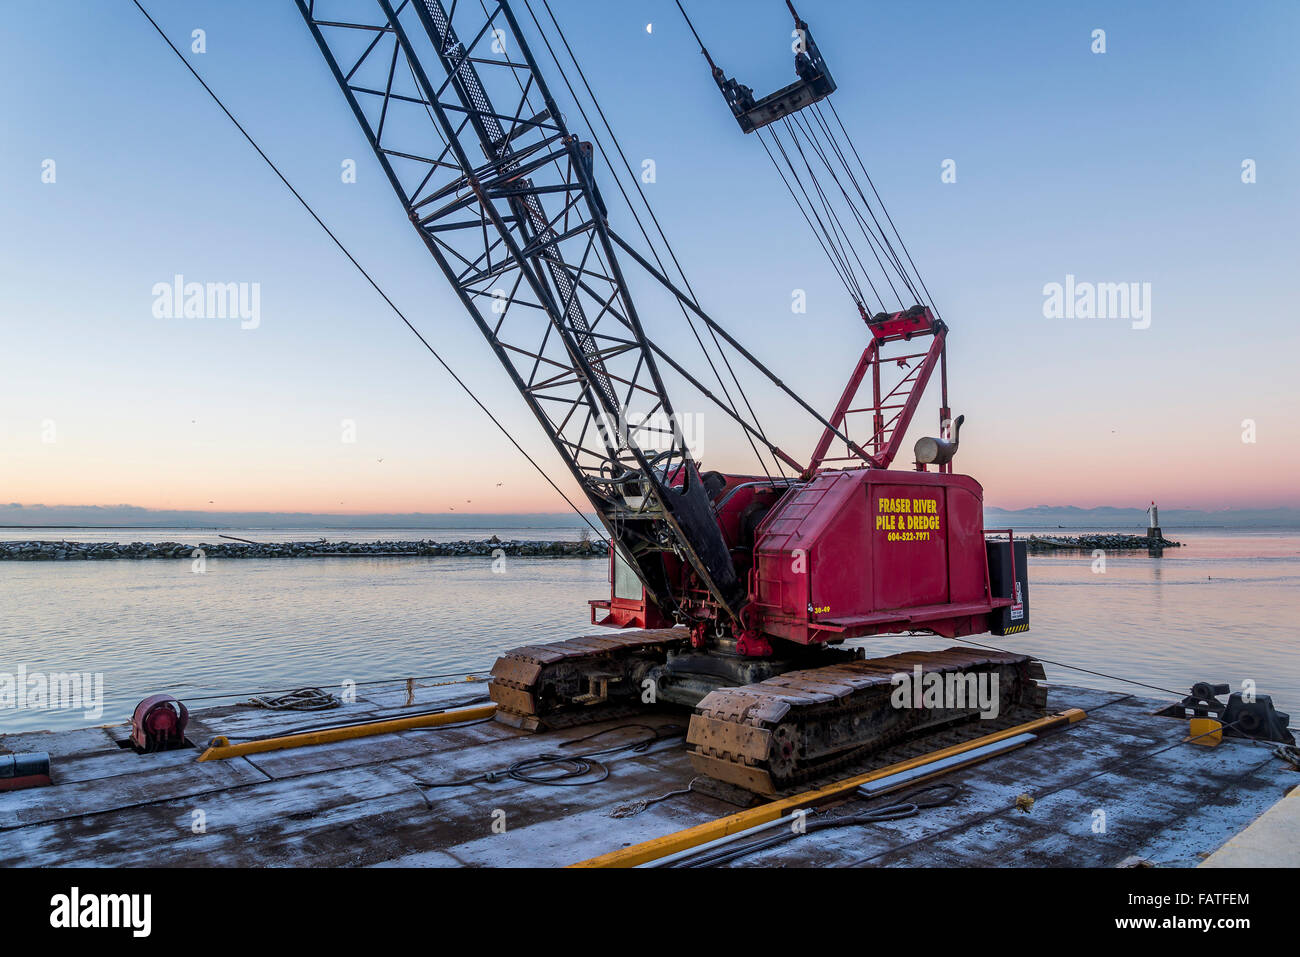 Fraser River Pile and Dredge, pile driving crane on barge, Steveston, Richmond, British Columbia, Canada, - Stock Image